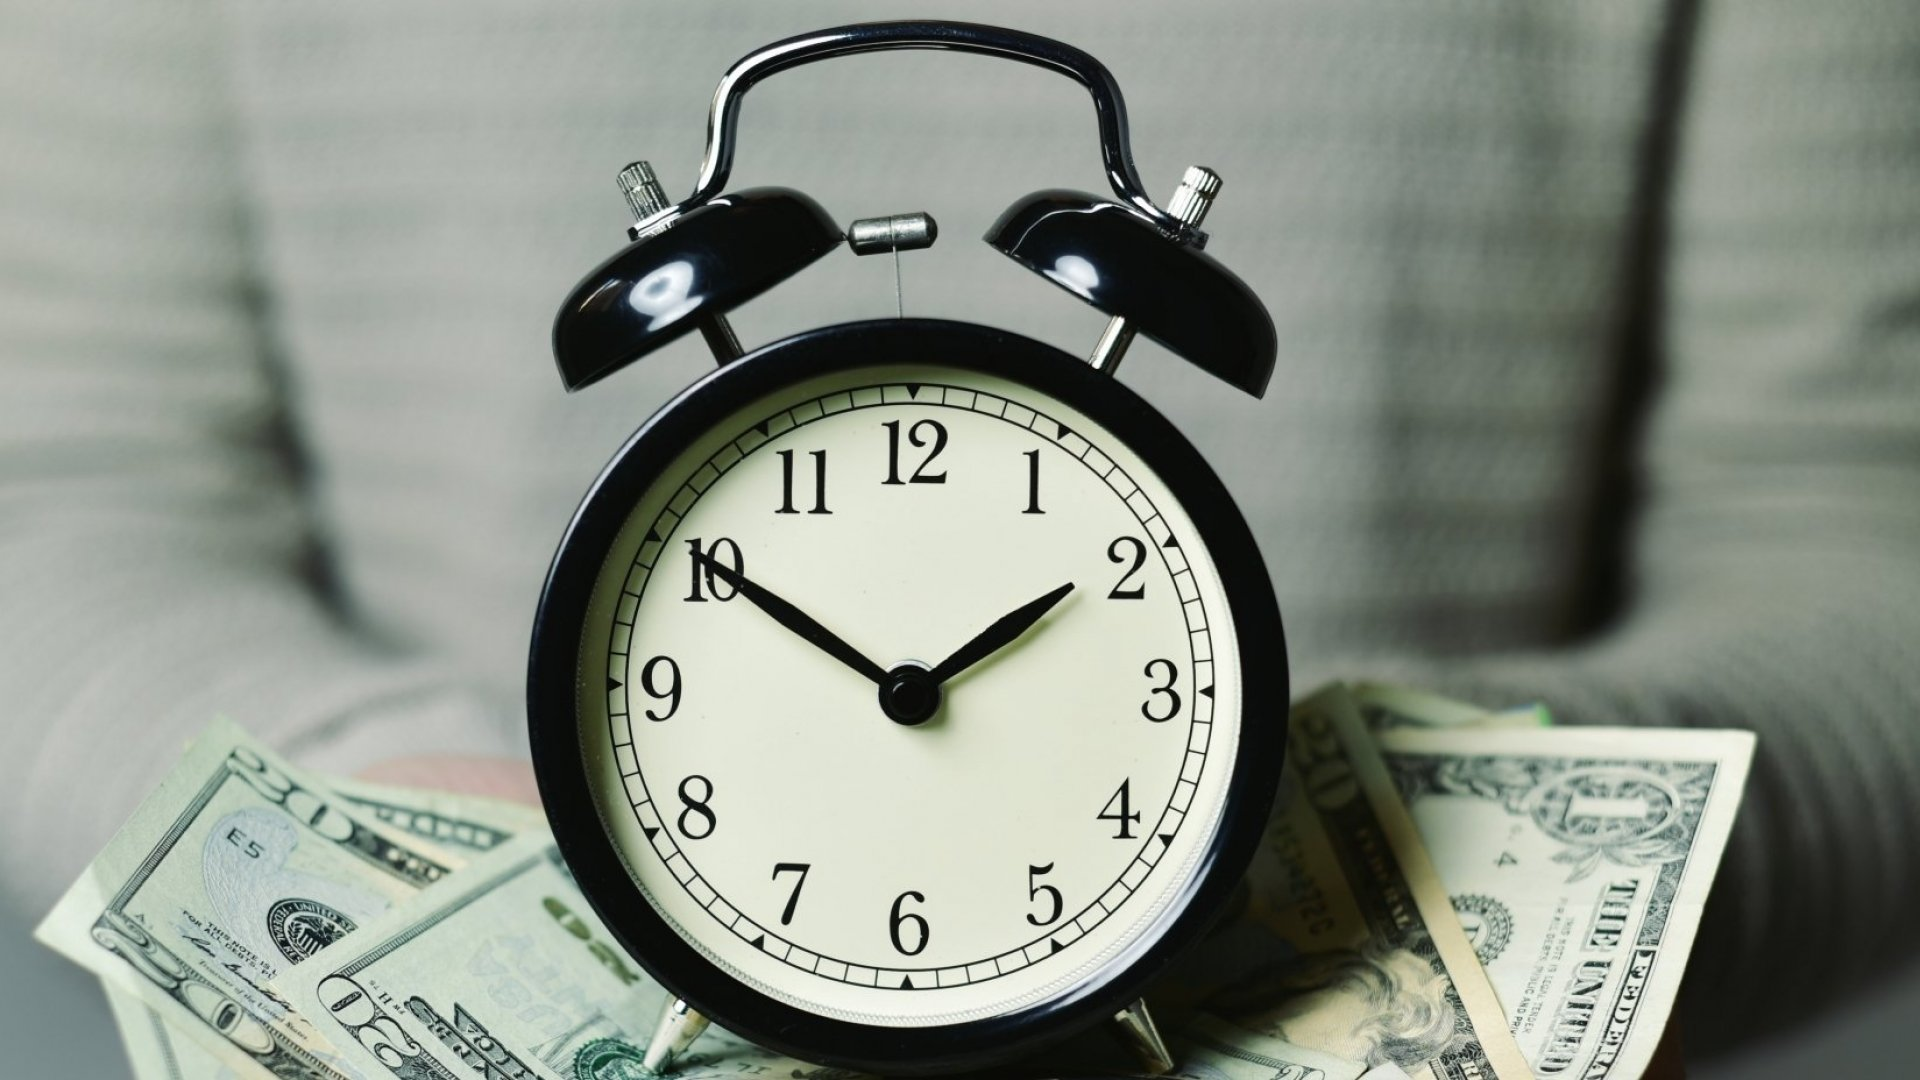 Every Entrepreneur Wants More Time and Money. These 6 Best Practices Could Make That Happen